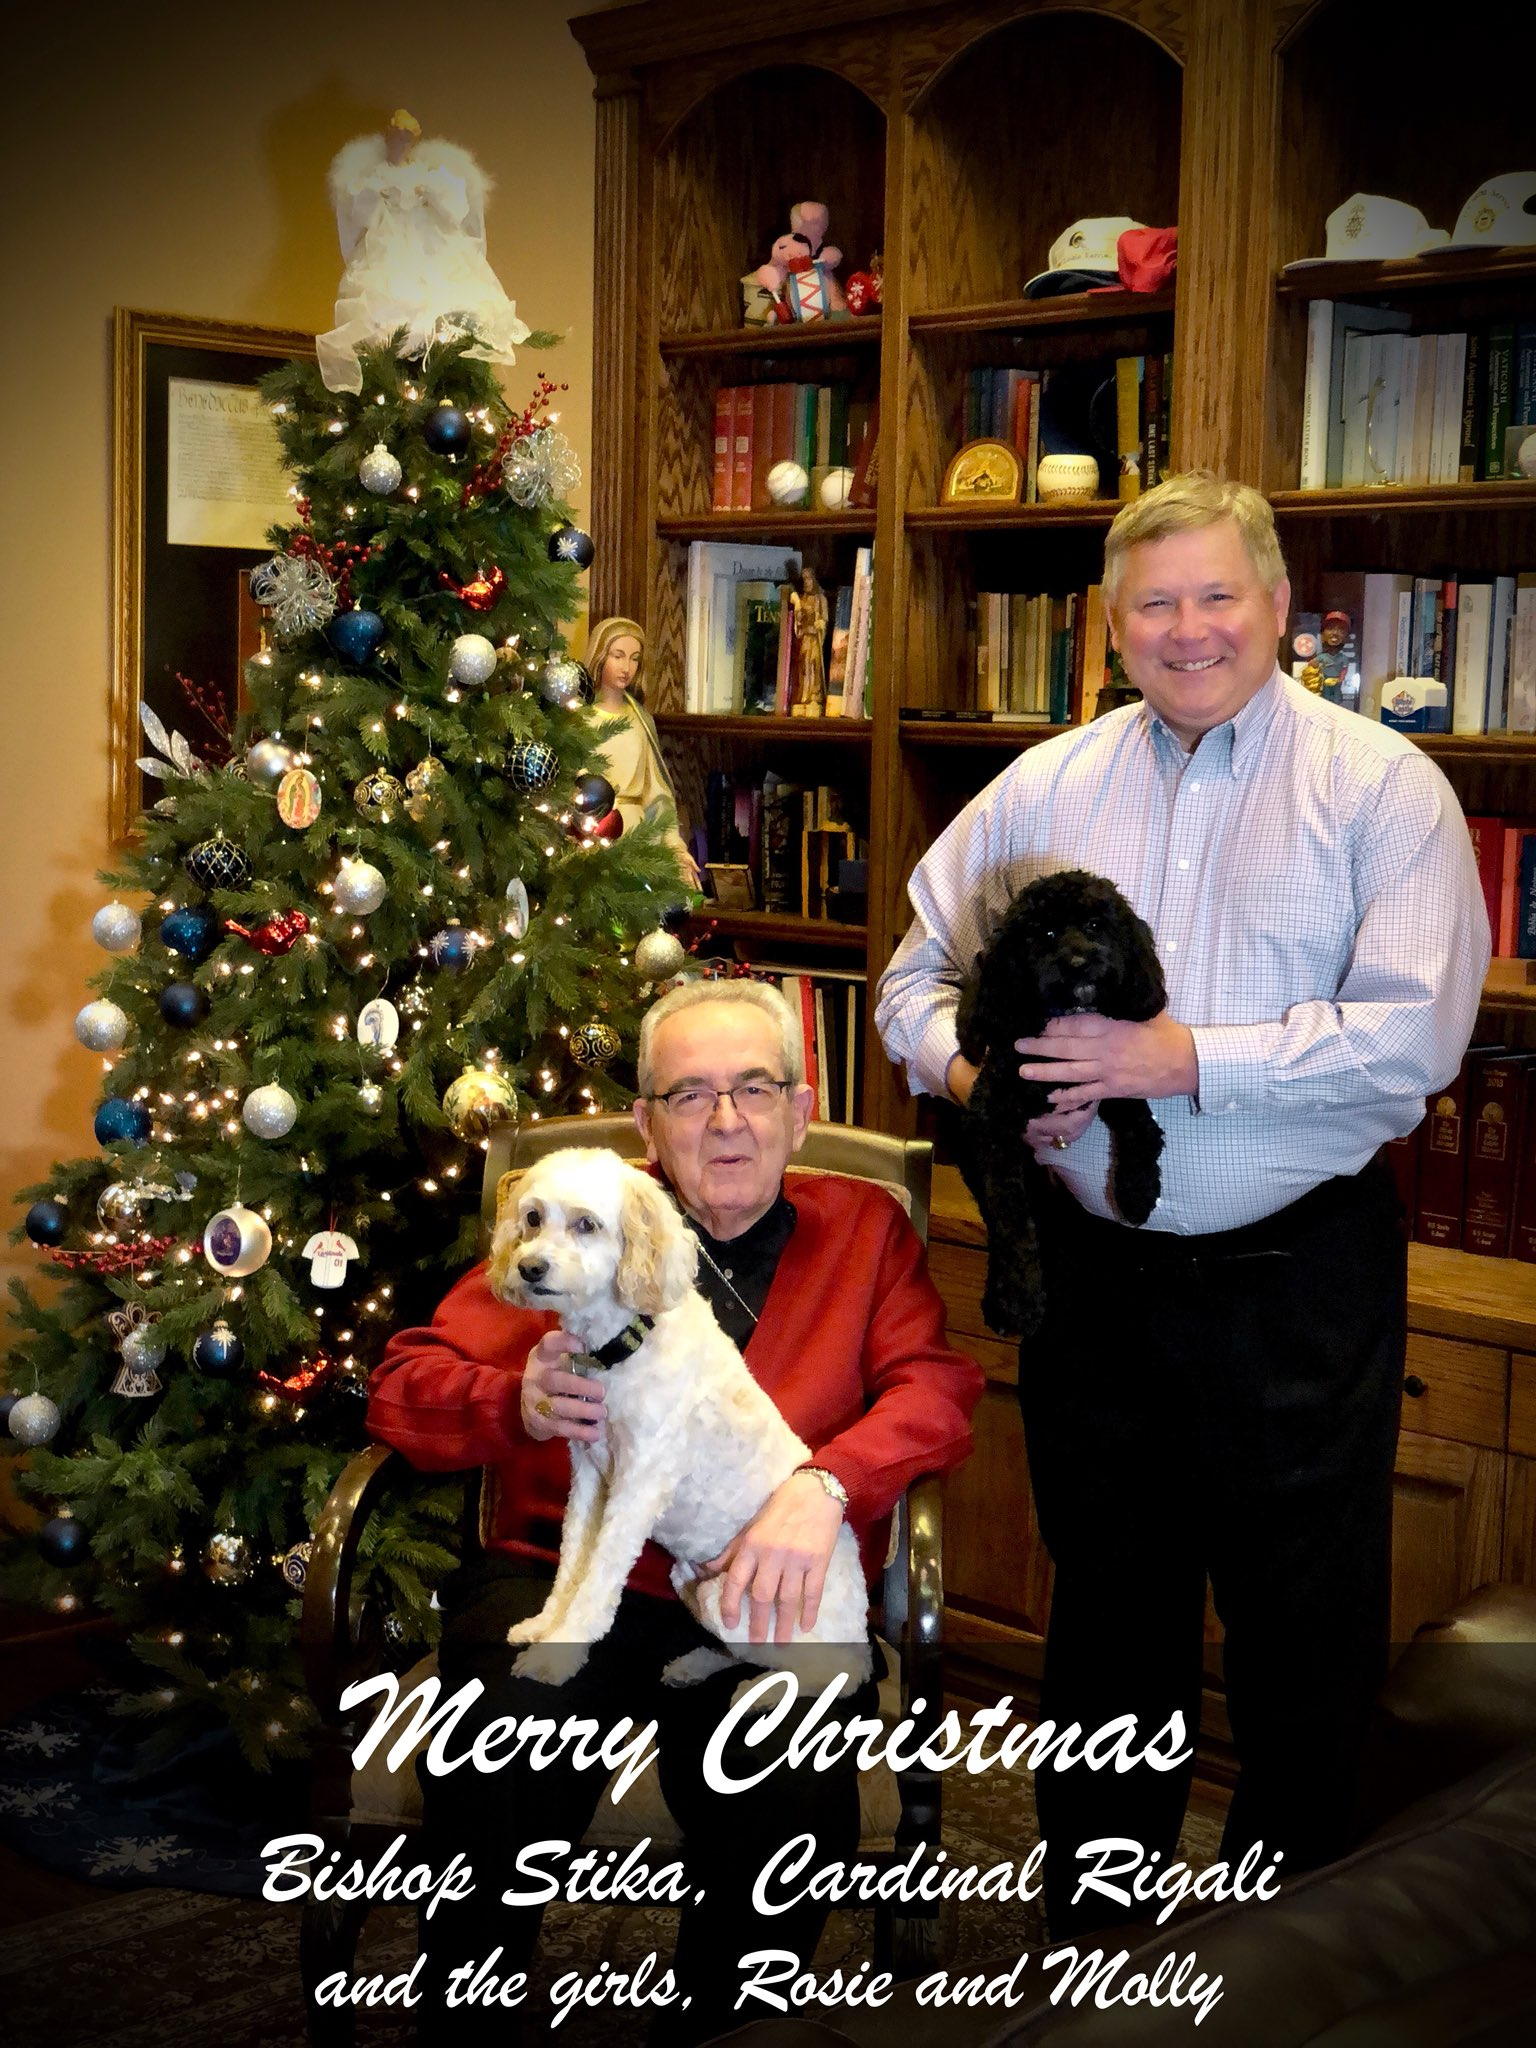 Stika poses with Cardinal Justin Rigali on the cover of his 2017 Christmas card. Rigali, who worked with Stika in the Archdiocese of St. Louis, resides in Stika's Knoxville home.